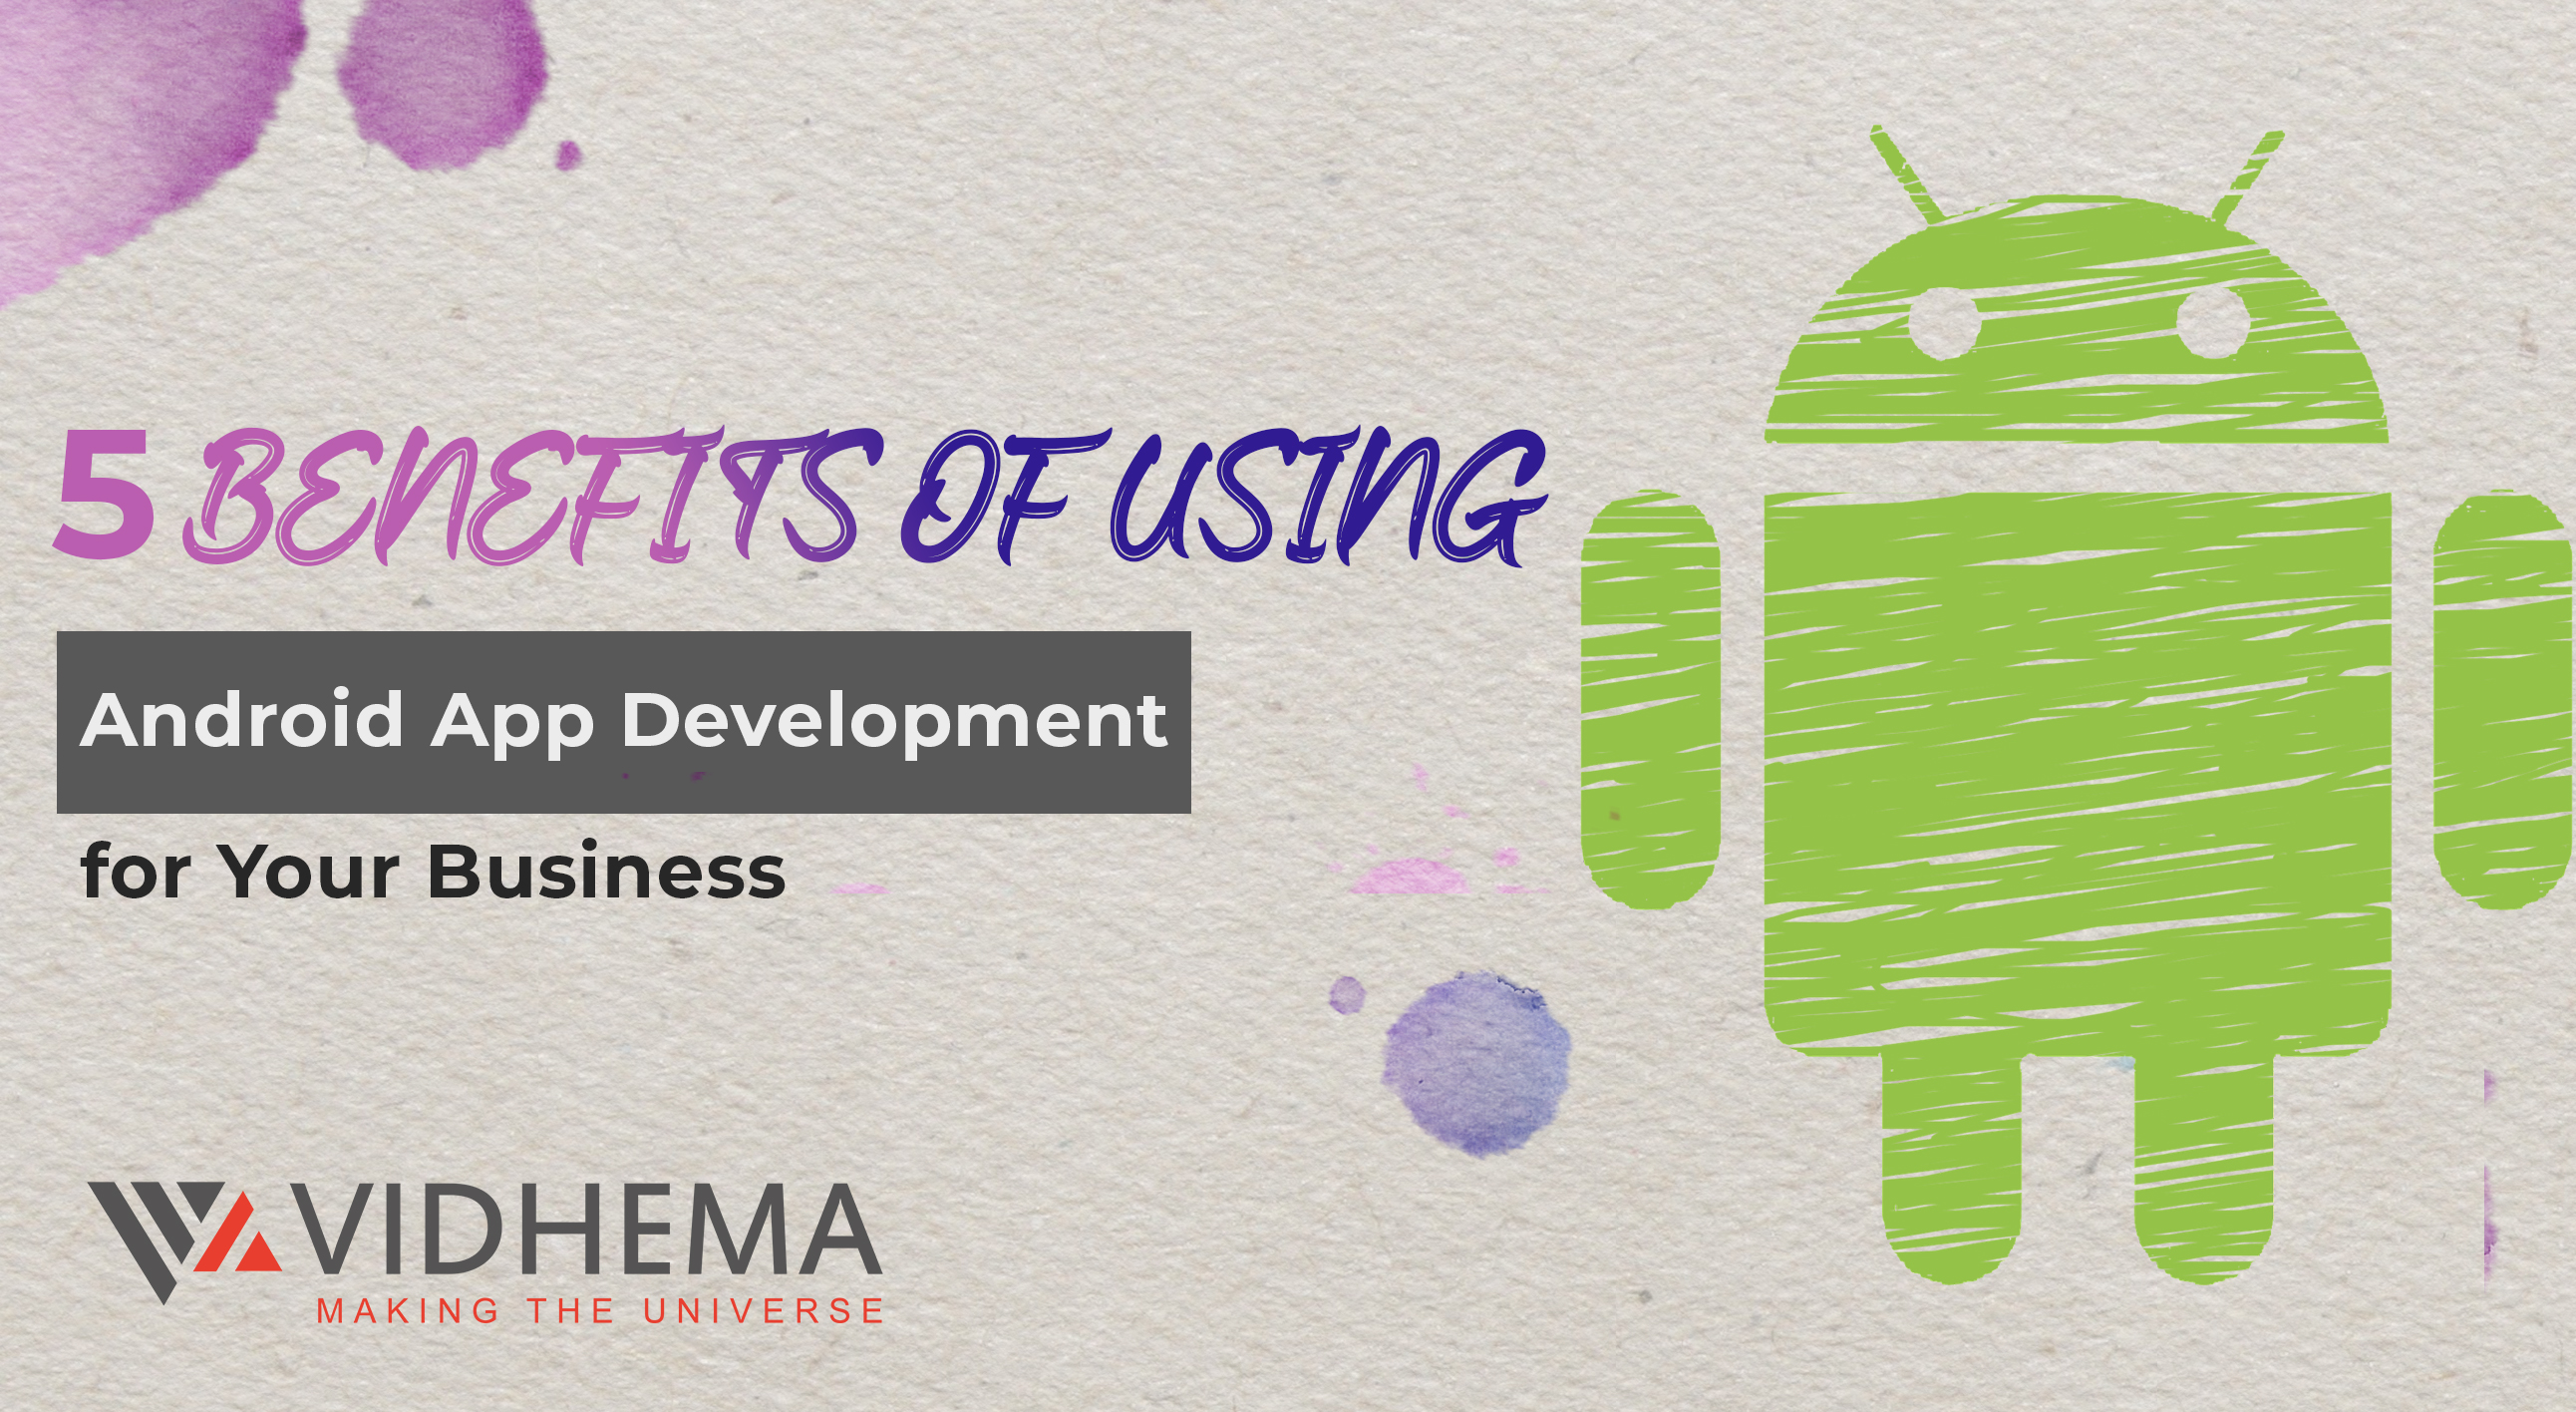 5 Benefits of Using Android App Development for Your Business